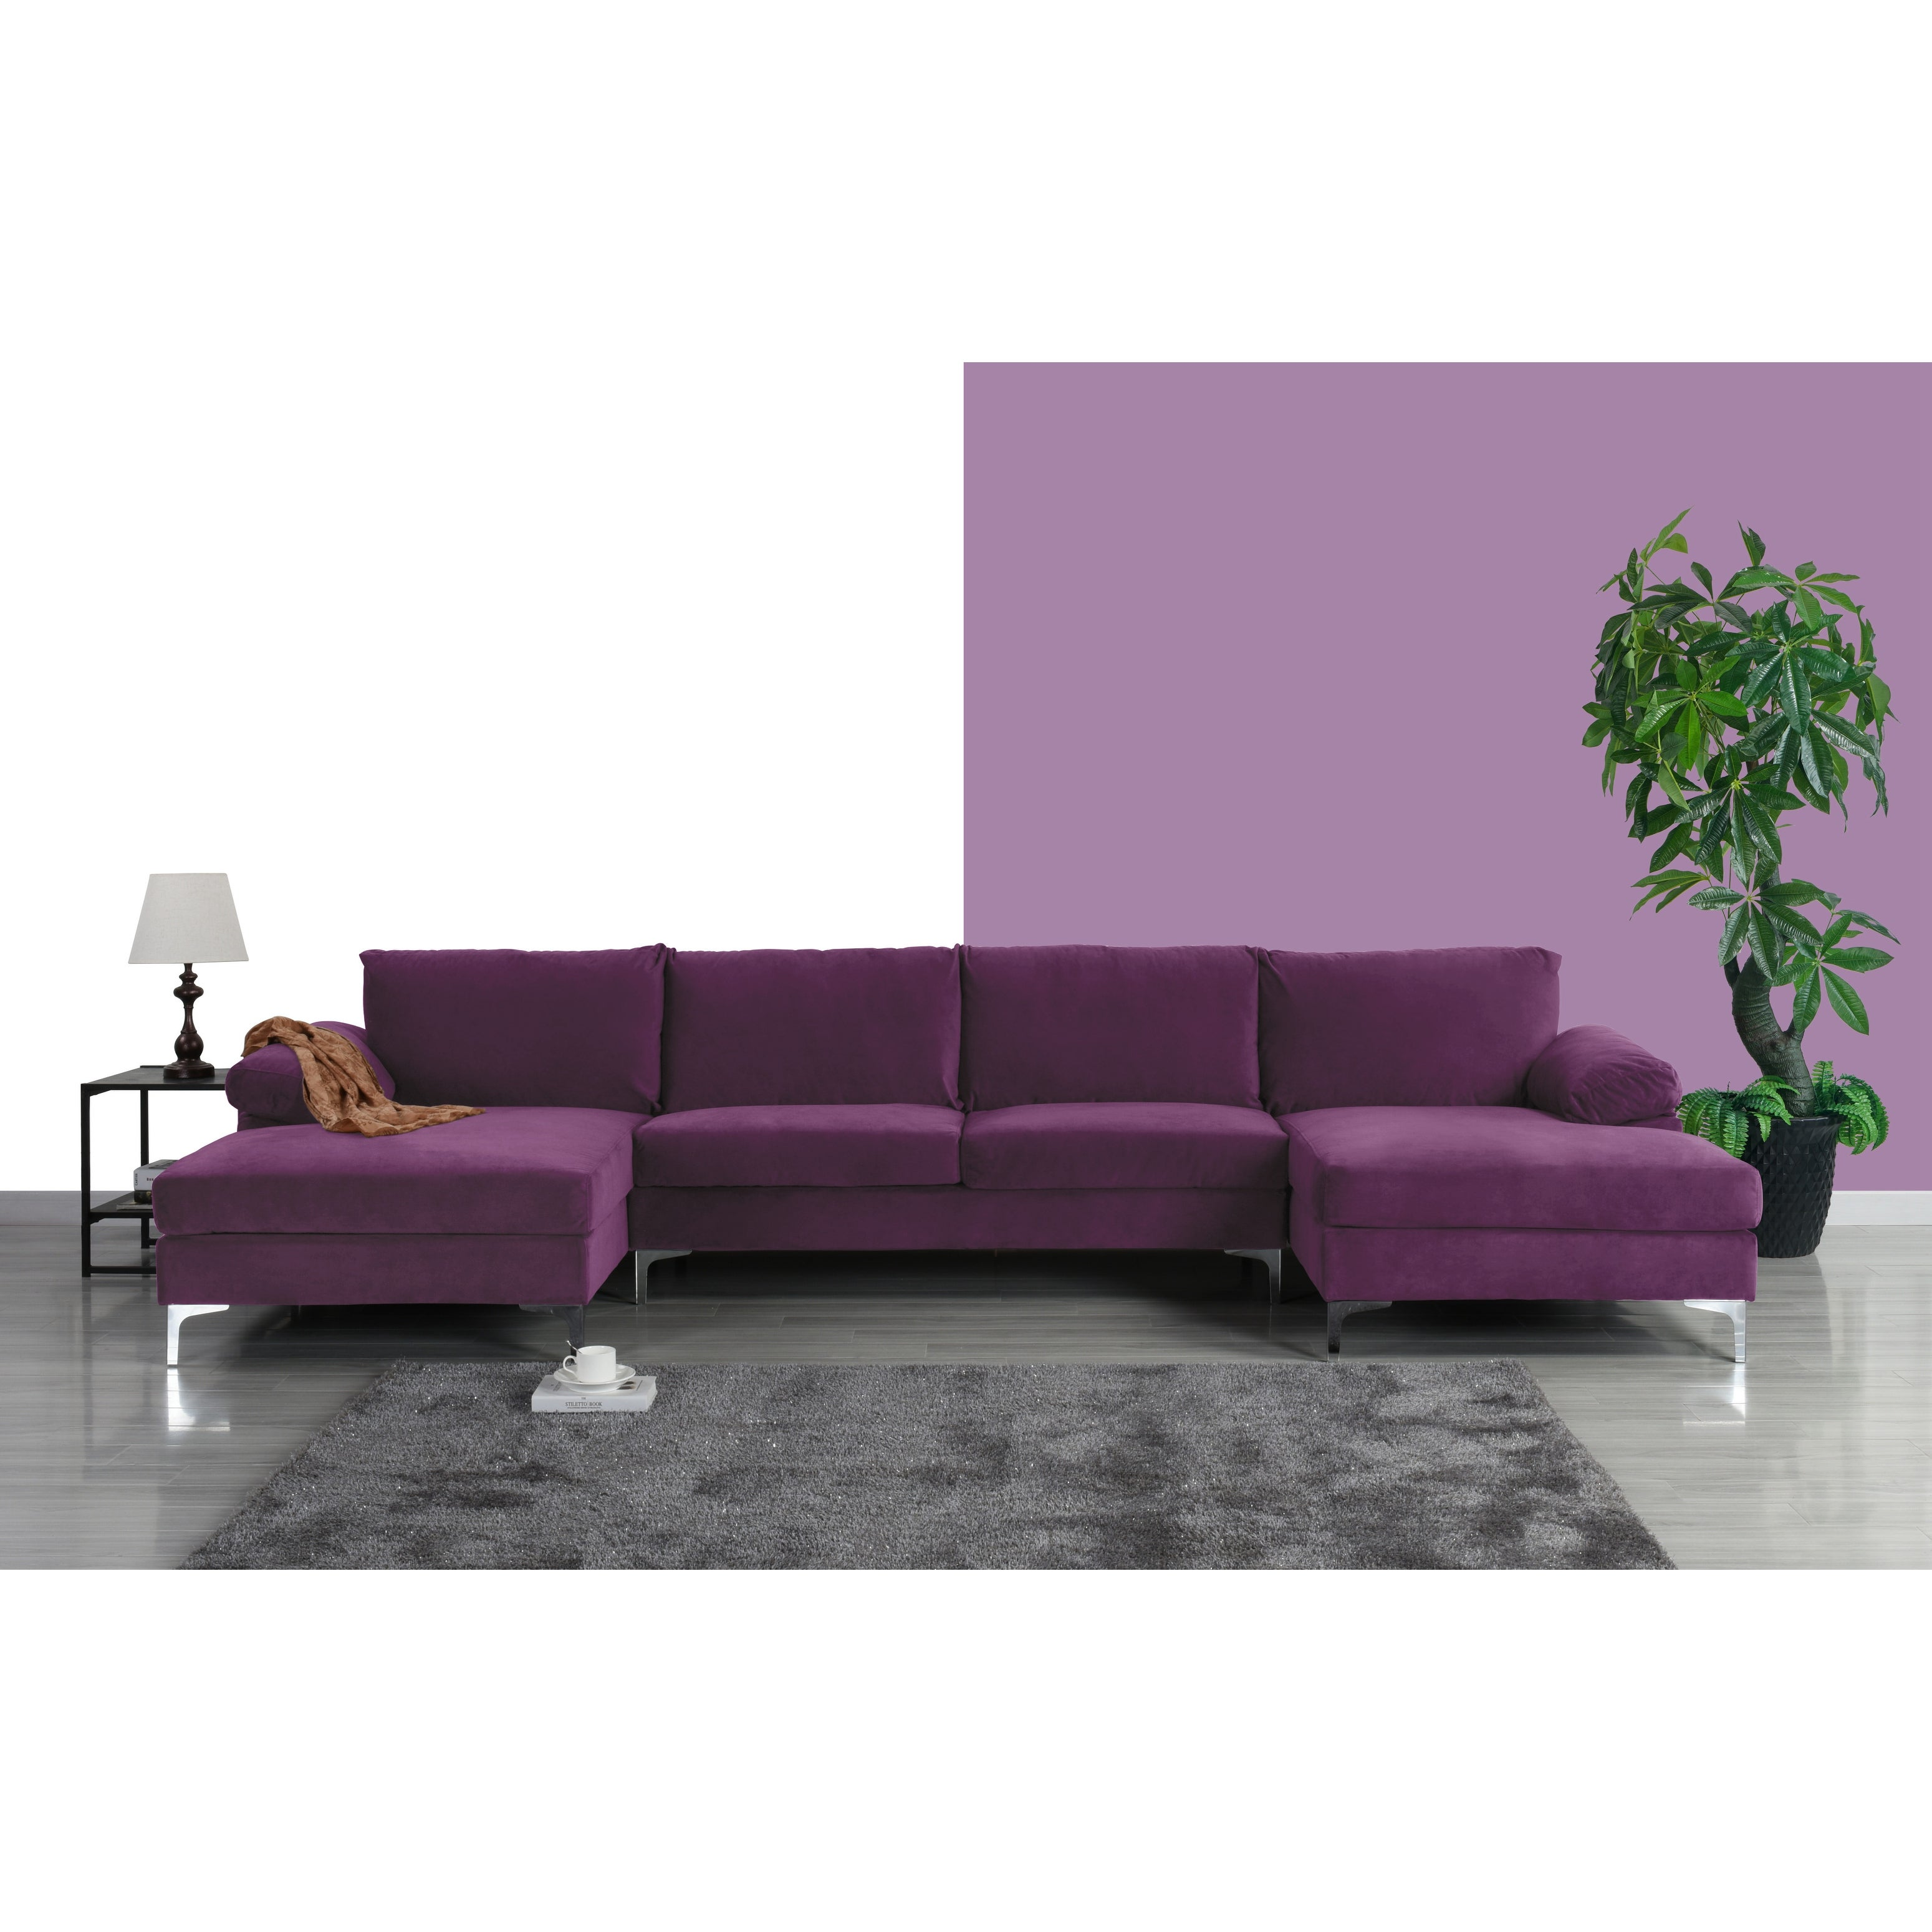 Picture of: Modern Xl Velvet Upholstery U Shaped Sectional Sofa Overstock 28156967